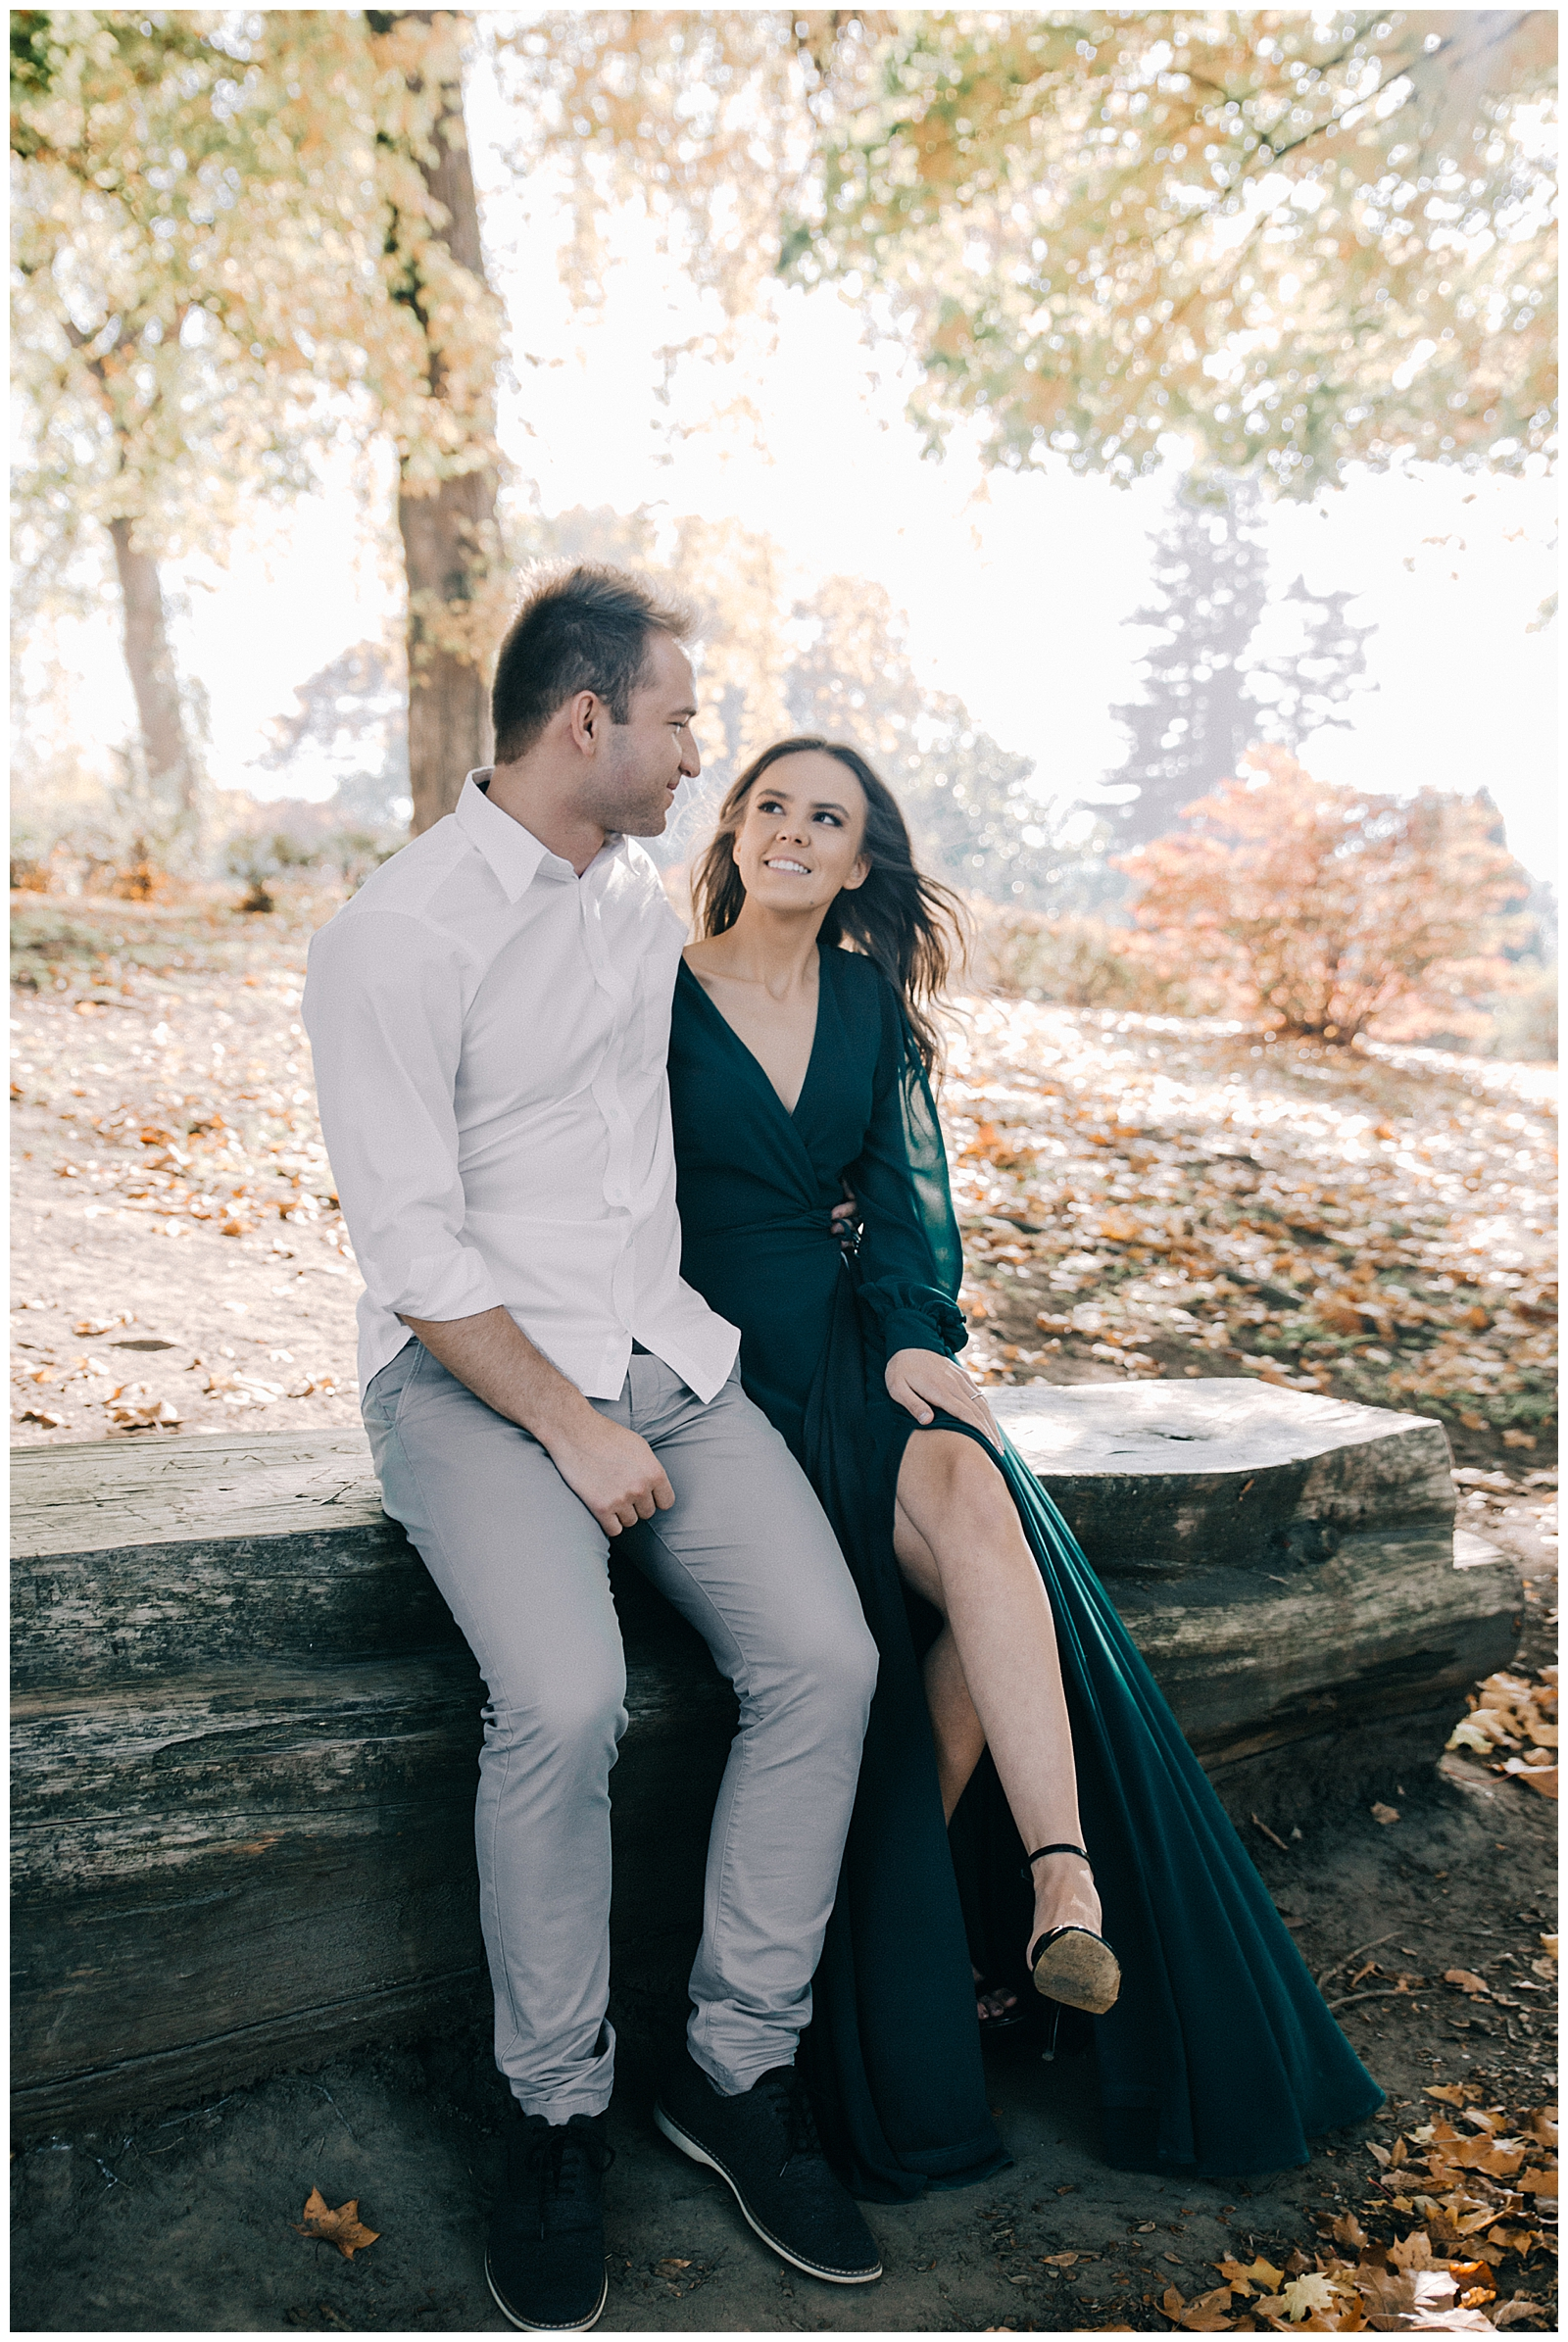 Vadim + Liana | Lake Sacajawea | Highlights | Annie Zav Photography | Anastasiya Zavrazhina | Highlights |4.JPG